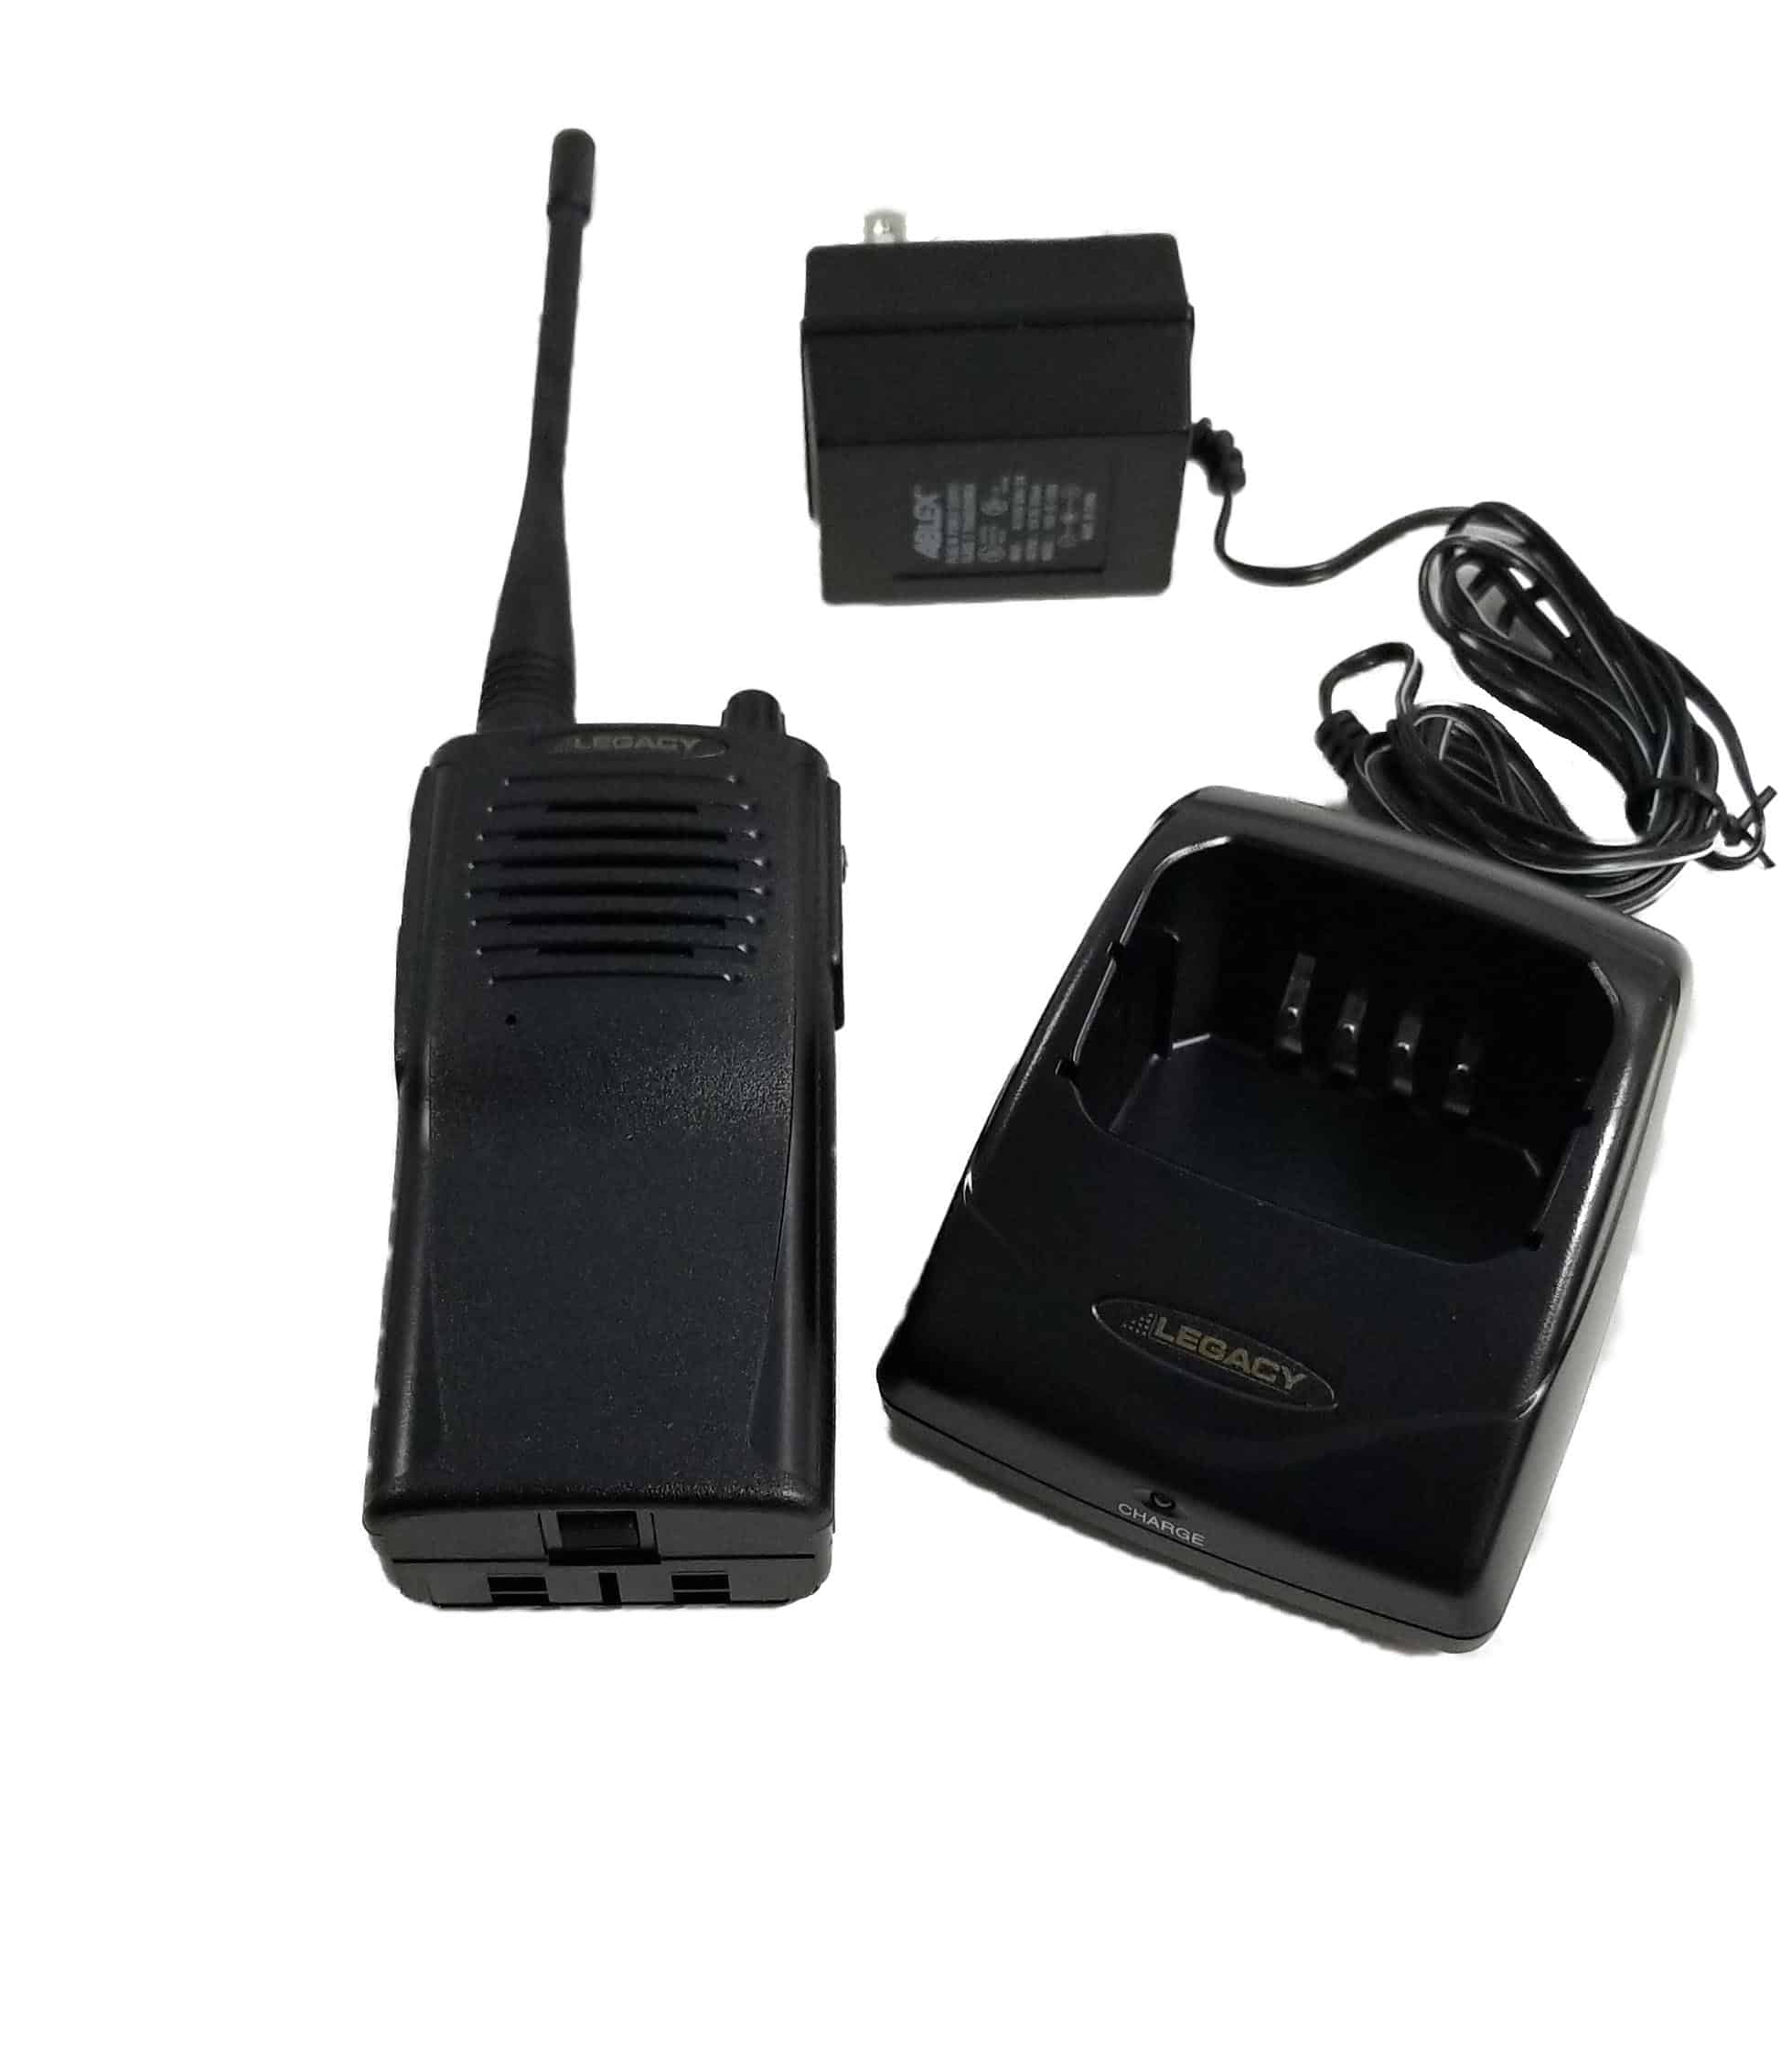 PL2245 - 2 Watt 2 Channel Uhf Radio with Drop In Charger